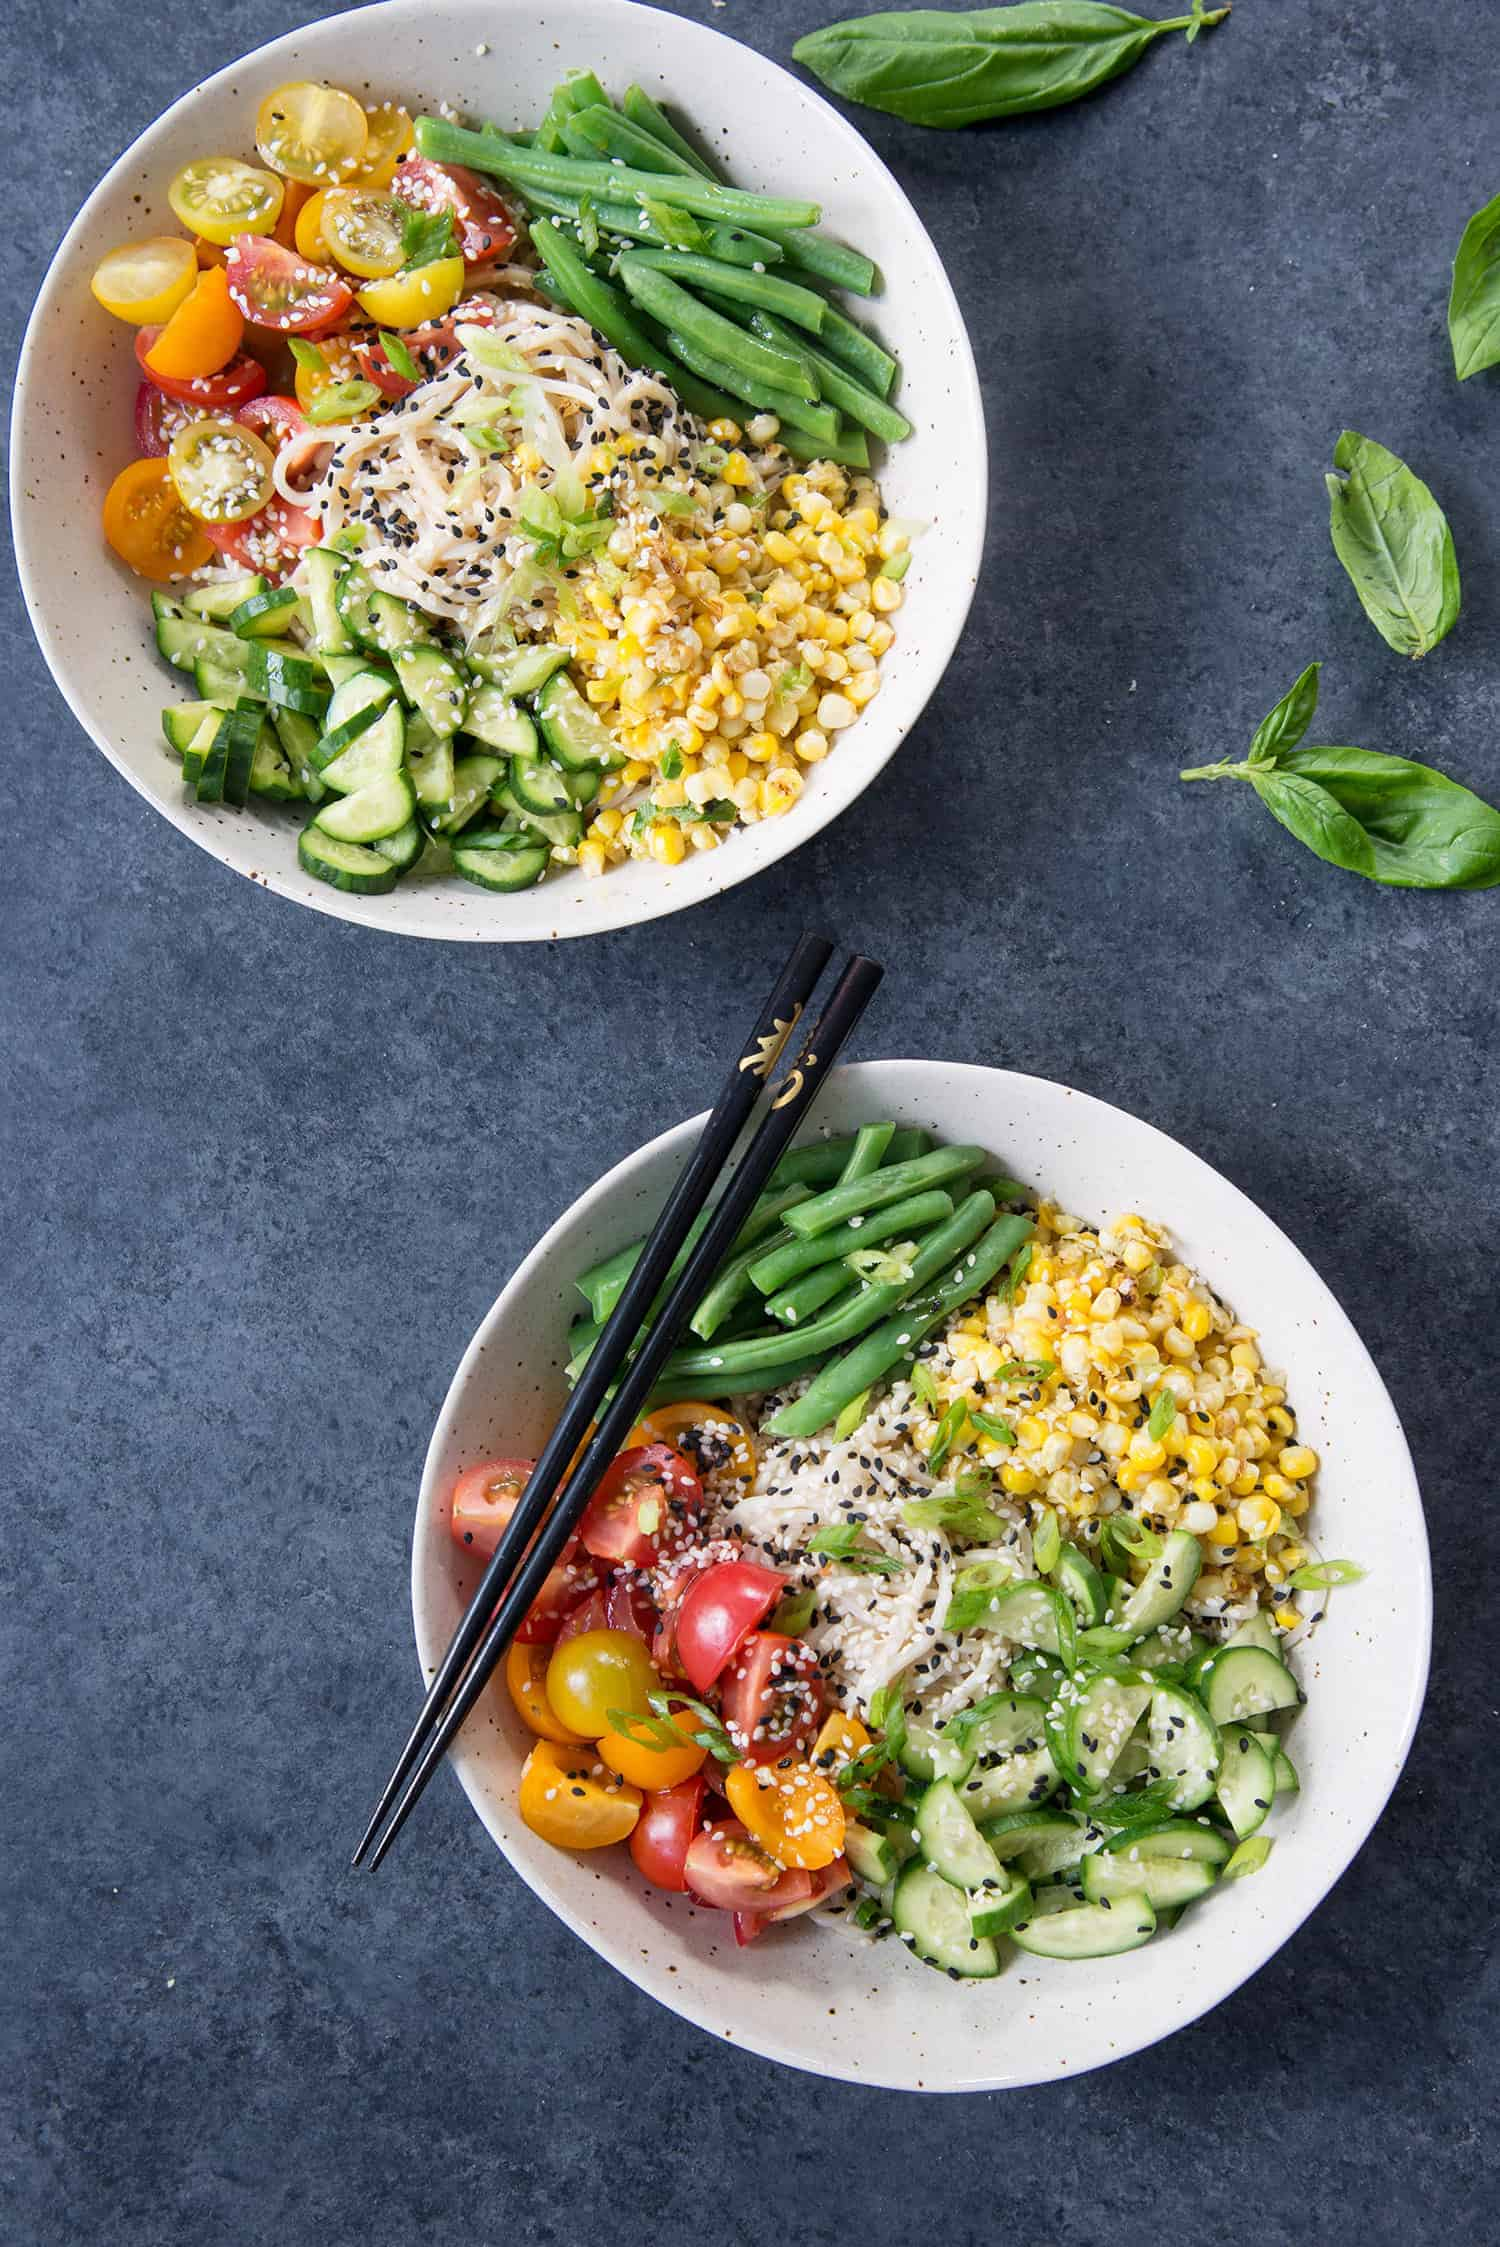 Summer Ramen Noodle Salad! You've gotta try this cold salad filled with ramen noodles, green beans, tomatoes, cucumbers, corn and a ponzu sauce. Vegan | www.delishknowledge.com